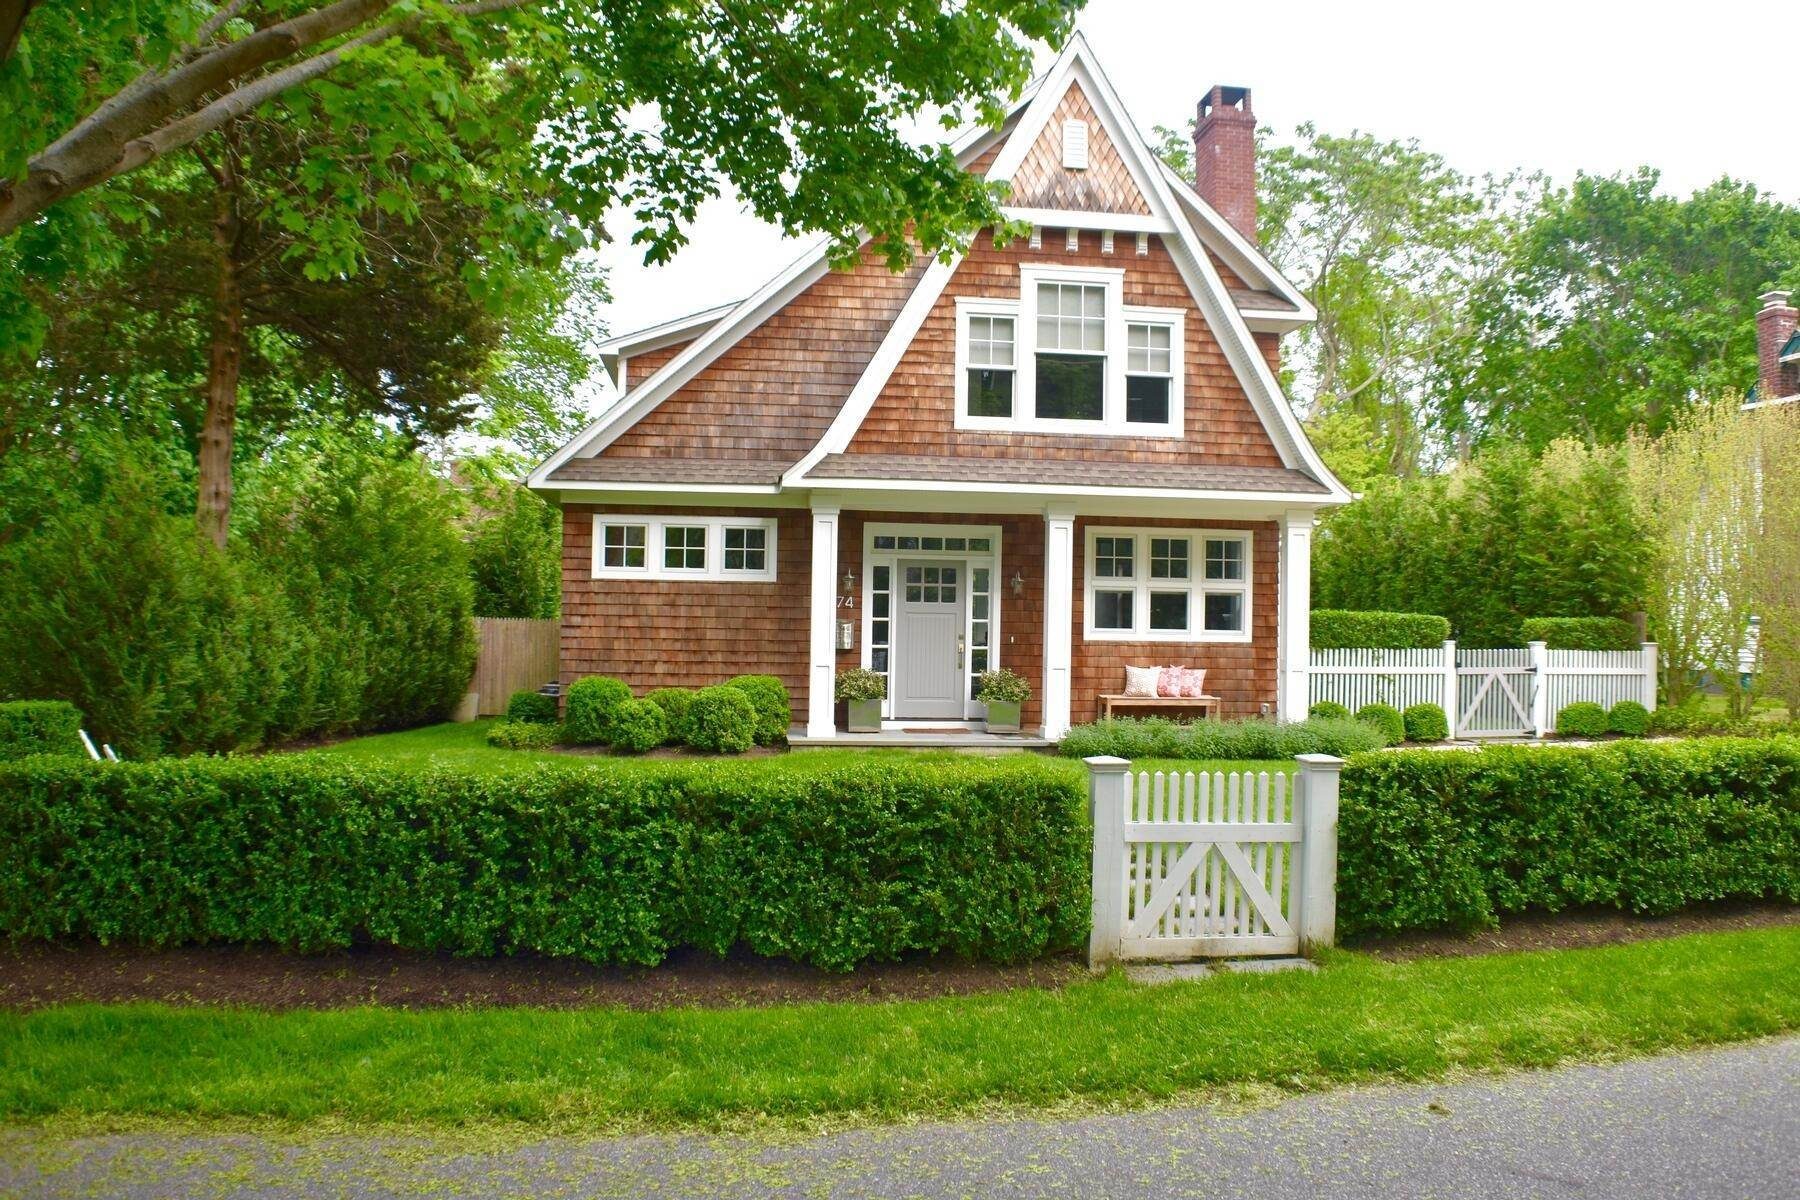 Single Family Home at East Hampton Village East Hampton, NY 11937